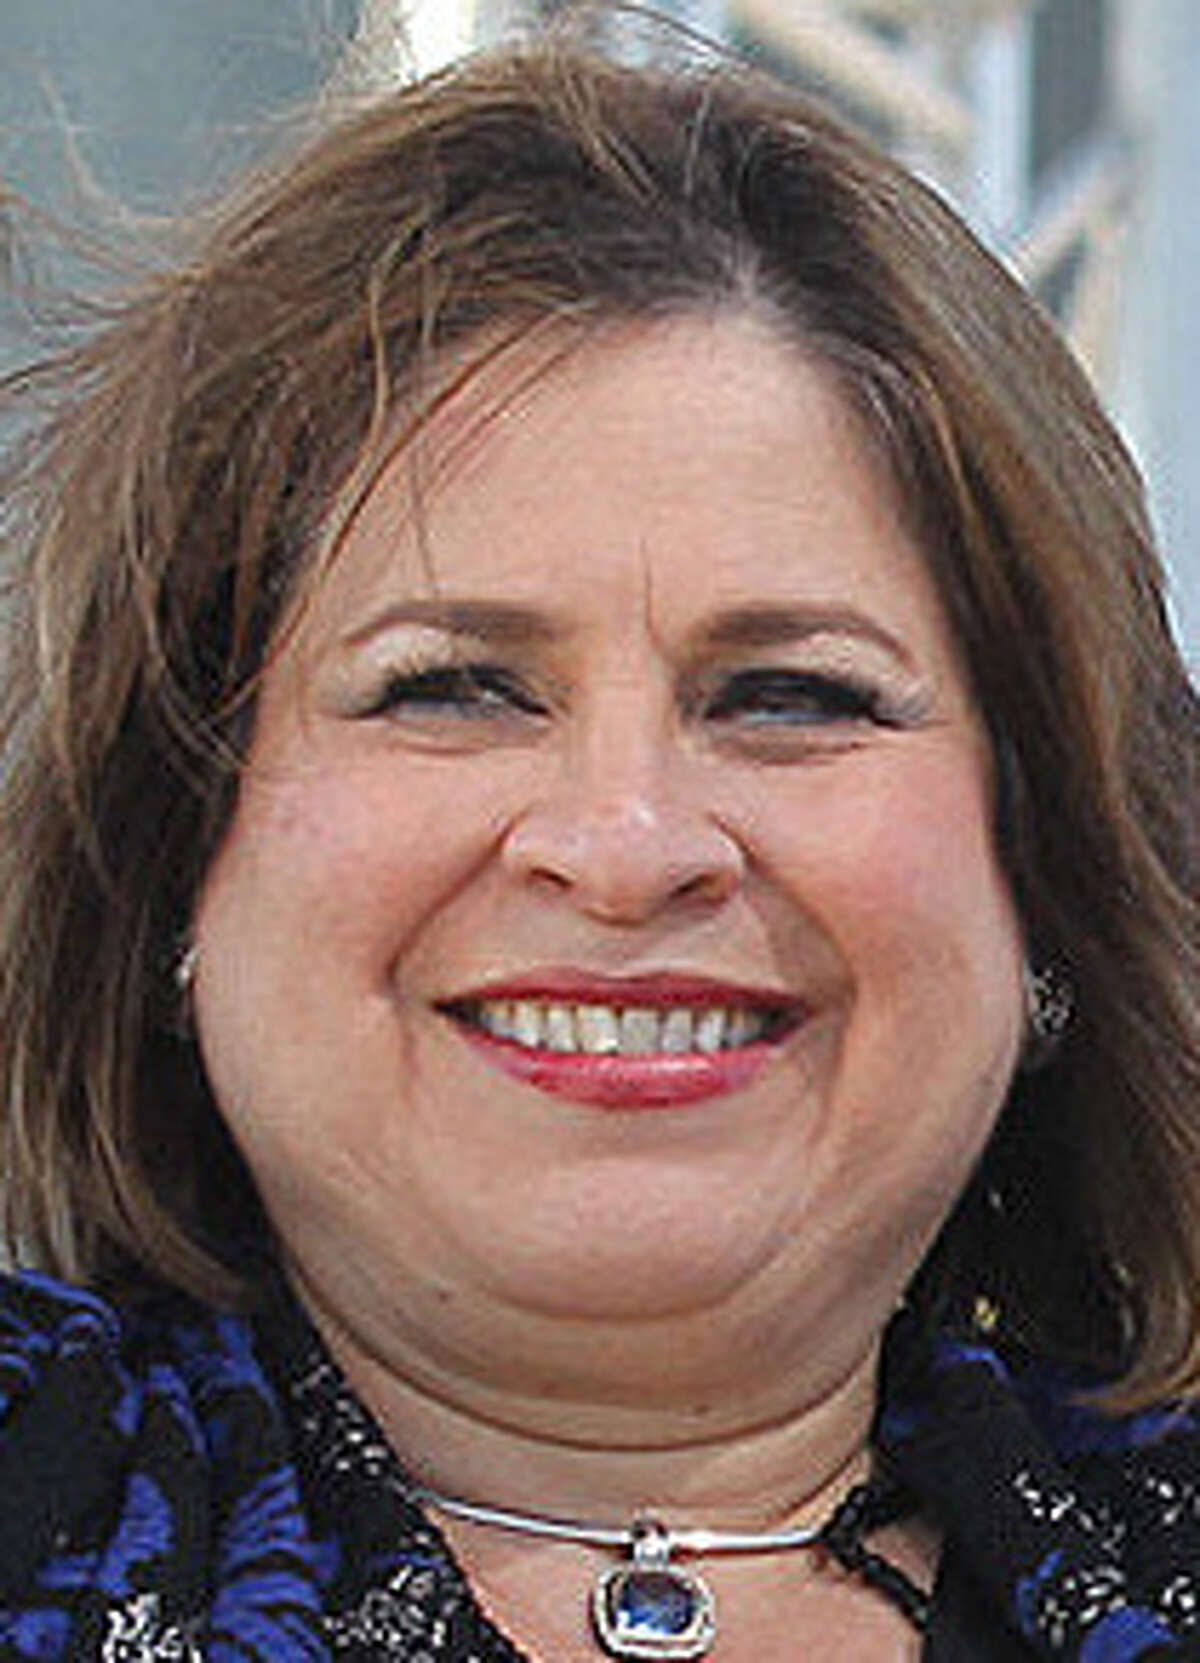 State Sen. Leticia Van de Putte is a sixth- generation Texan and a candidate for lieutenant gov.